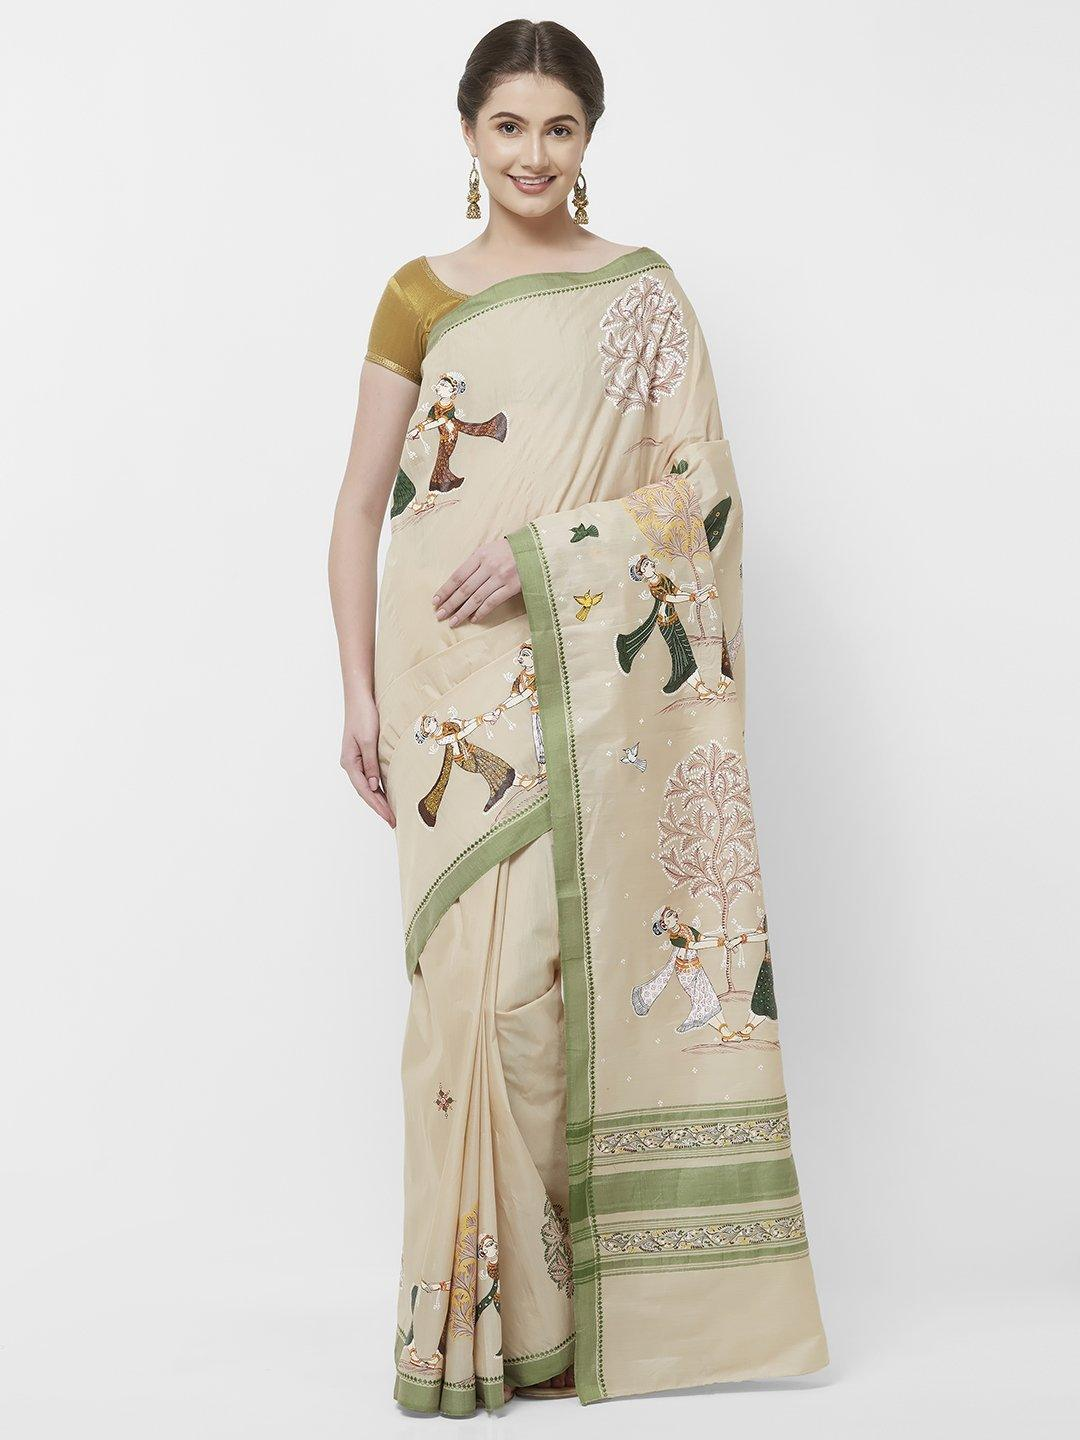 CraftsCollection.in -Beige Cotton Saree with handpainted Pattachitra art